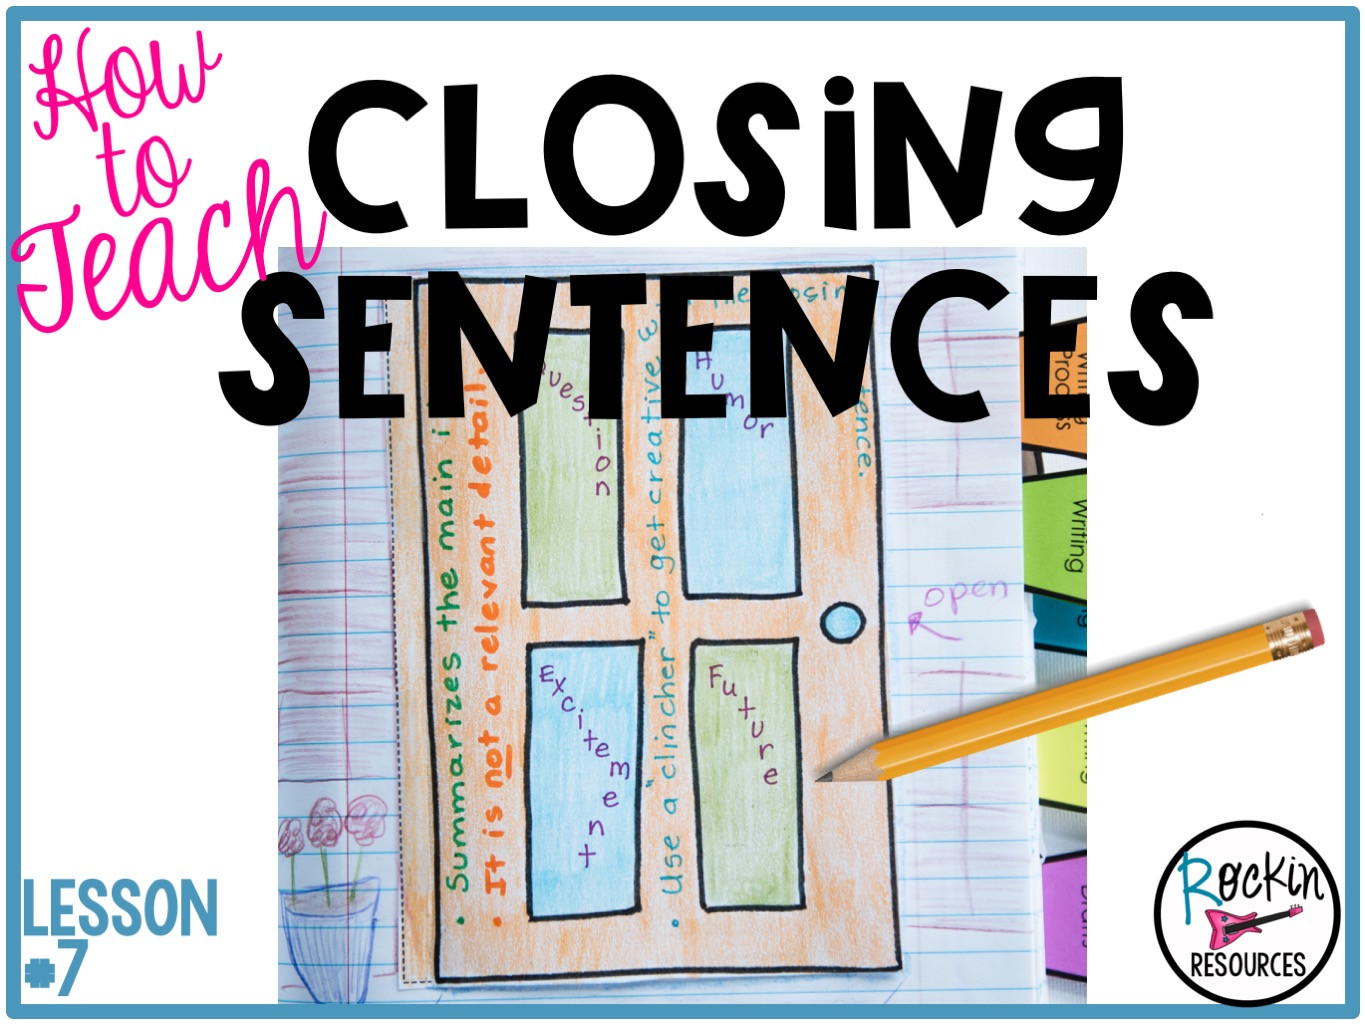 Topic Sentences Worksheets Grade 4 Writing Mini Lesson 7 Closing Sentences and Clinchers